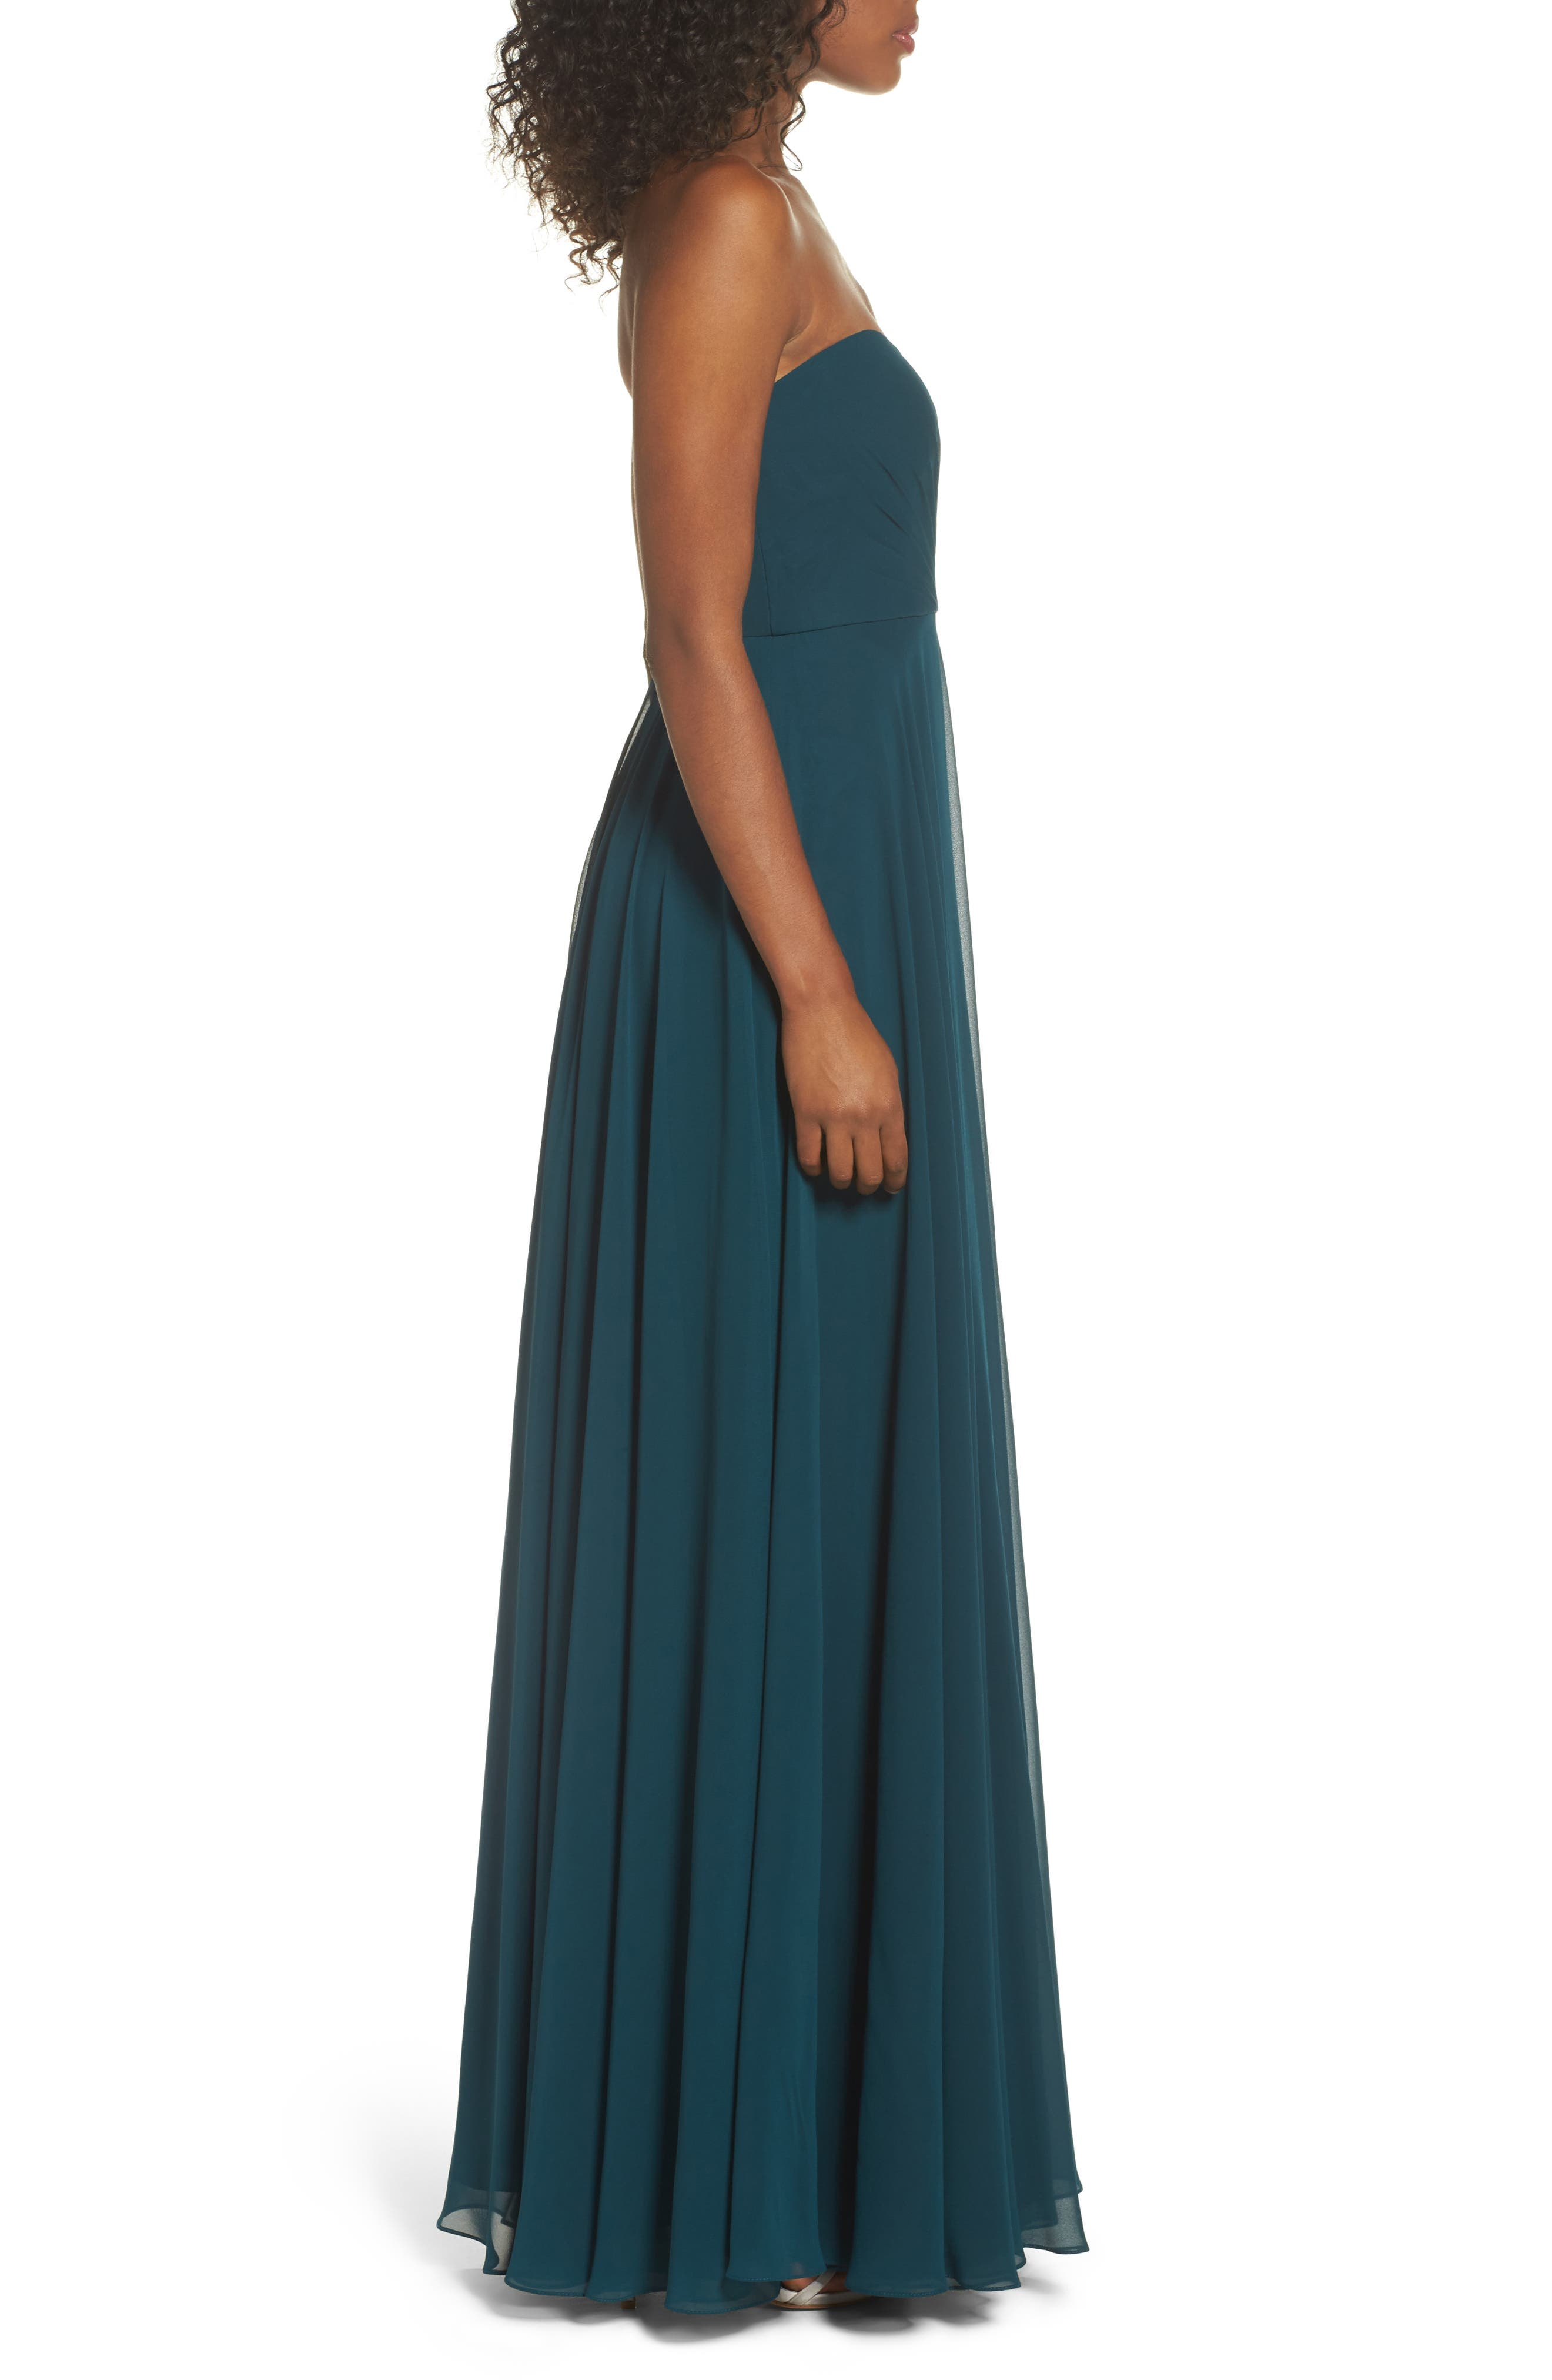 JENNY YOO,                             Adeline Strapless Chiffon Gown,                             Alternate thumbnail 3, color,                             444